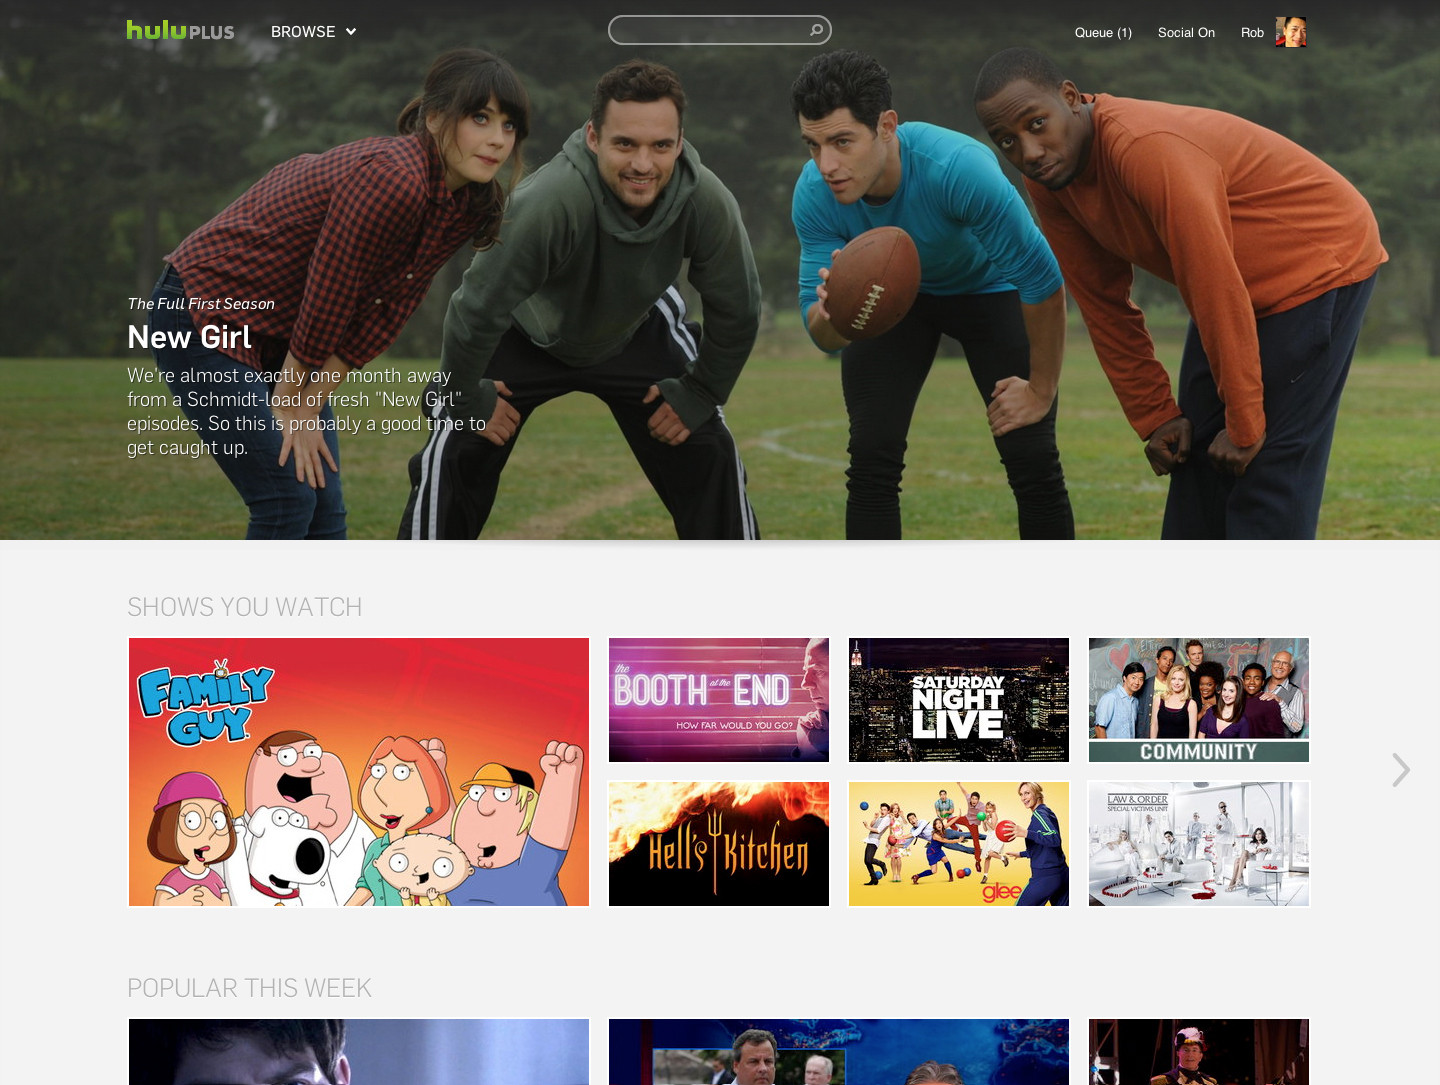 WSJ: Hulu reportedly looking to sell stakes to Time Warner